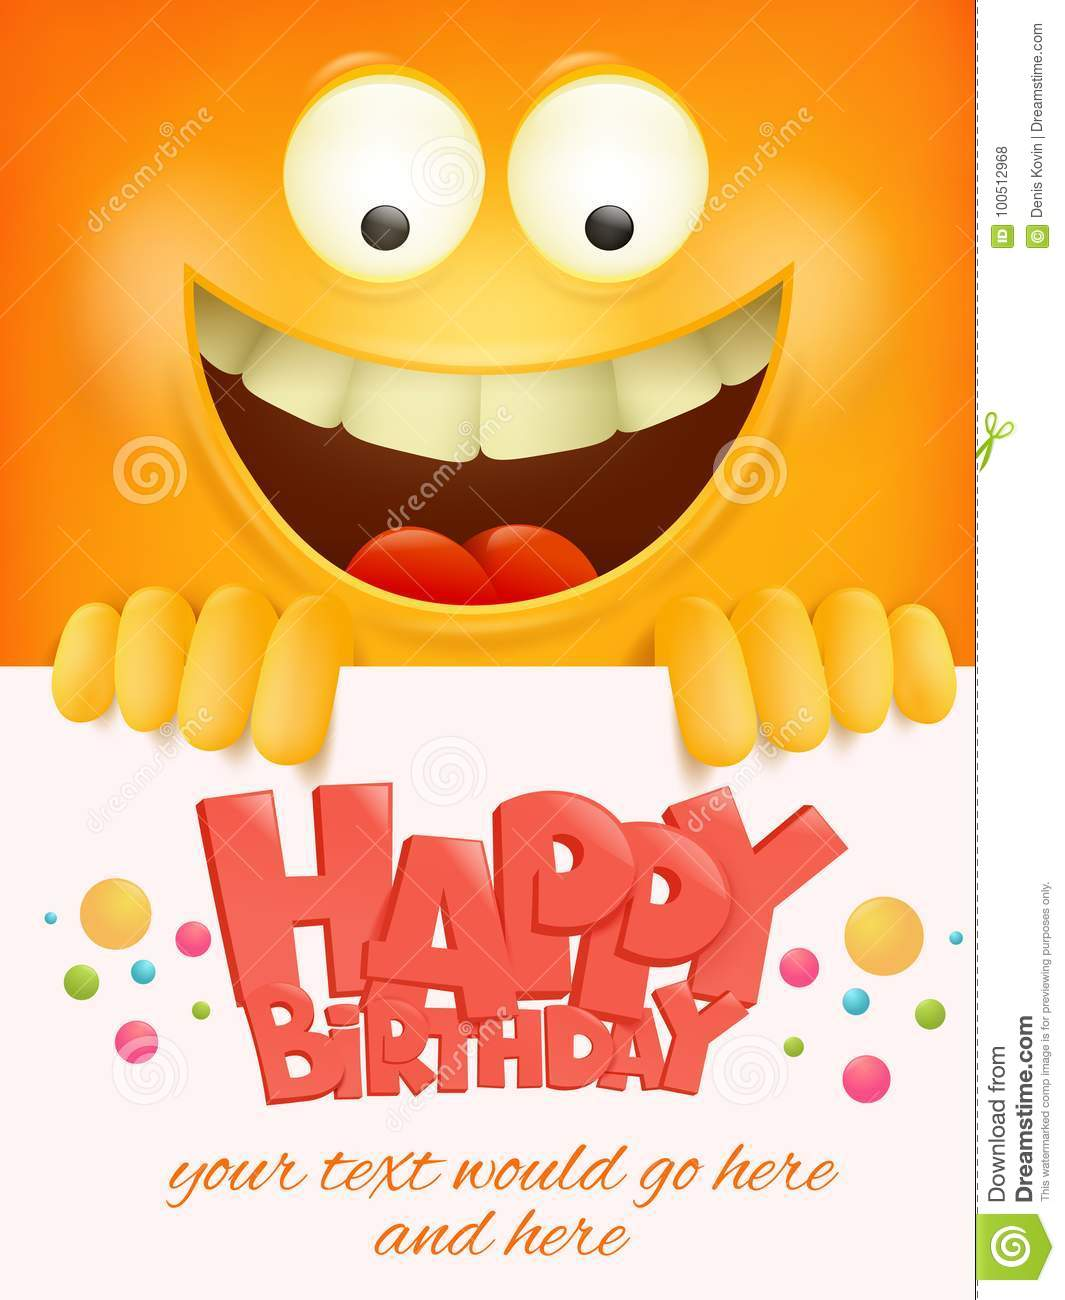 Happy Birthday Card Template With Yellow Smiley Face